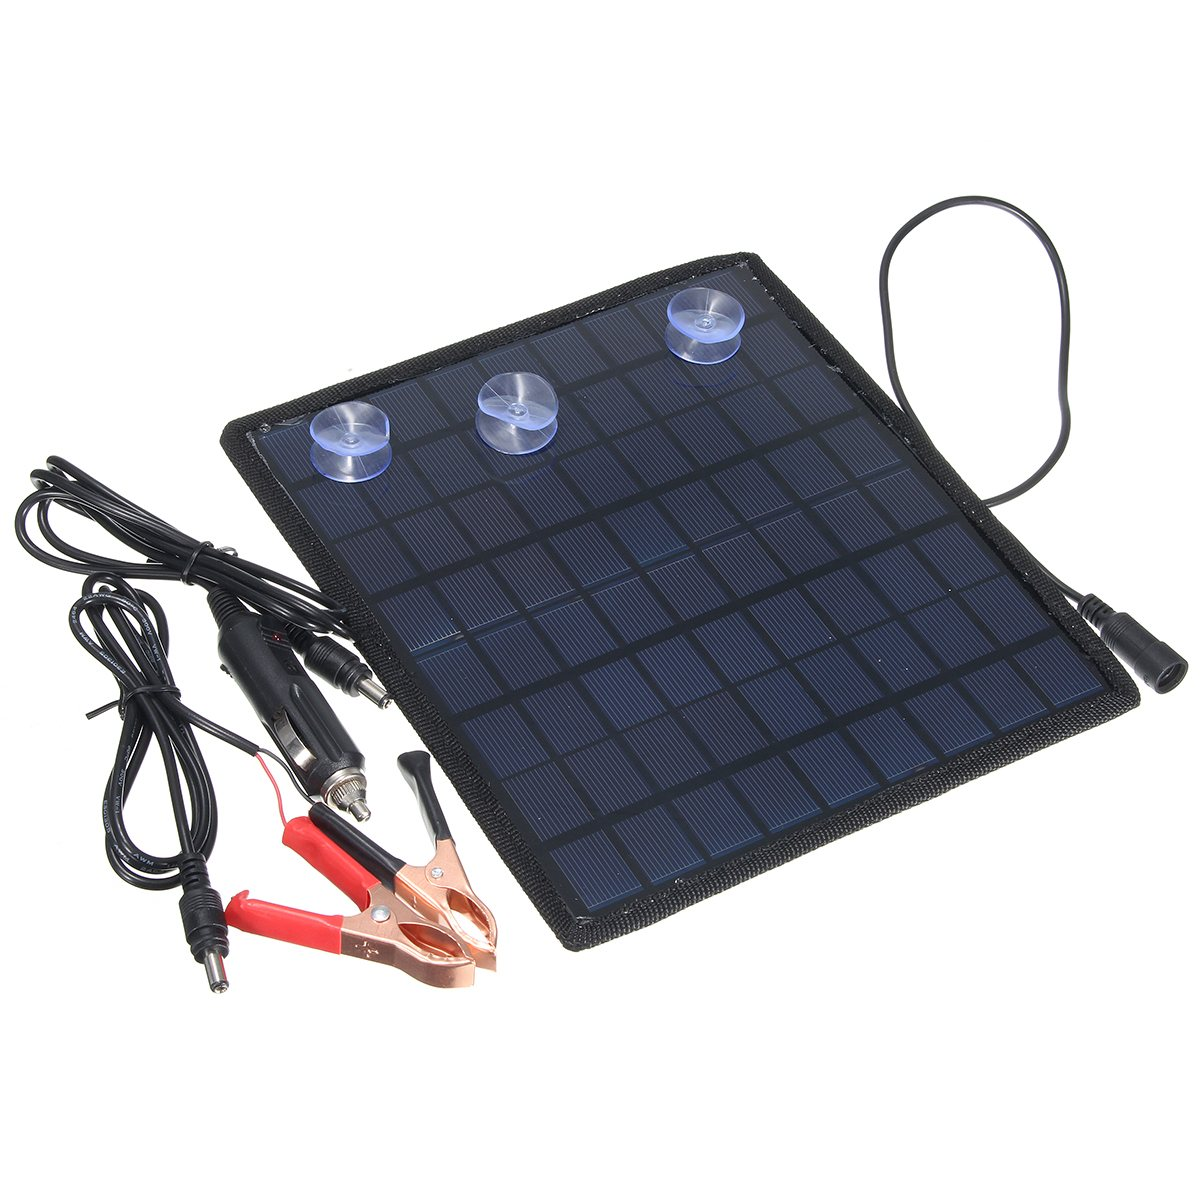 High Tech 12V Solar Panel Car Charger Battery Charger Solar Maintainer Charger for Car Automobile Motorcycle External Battery